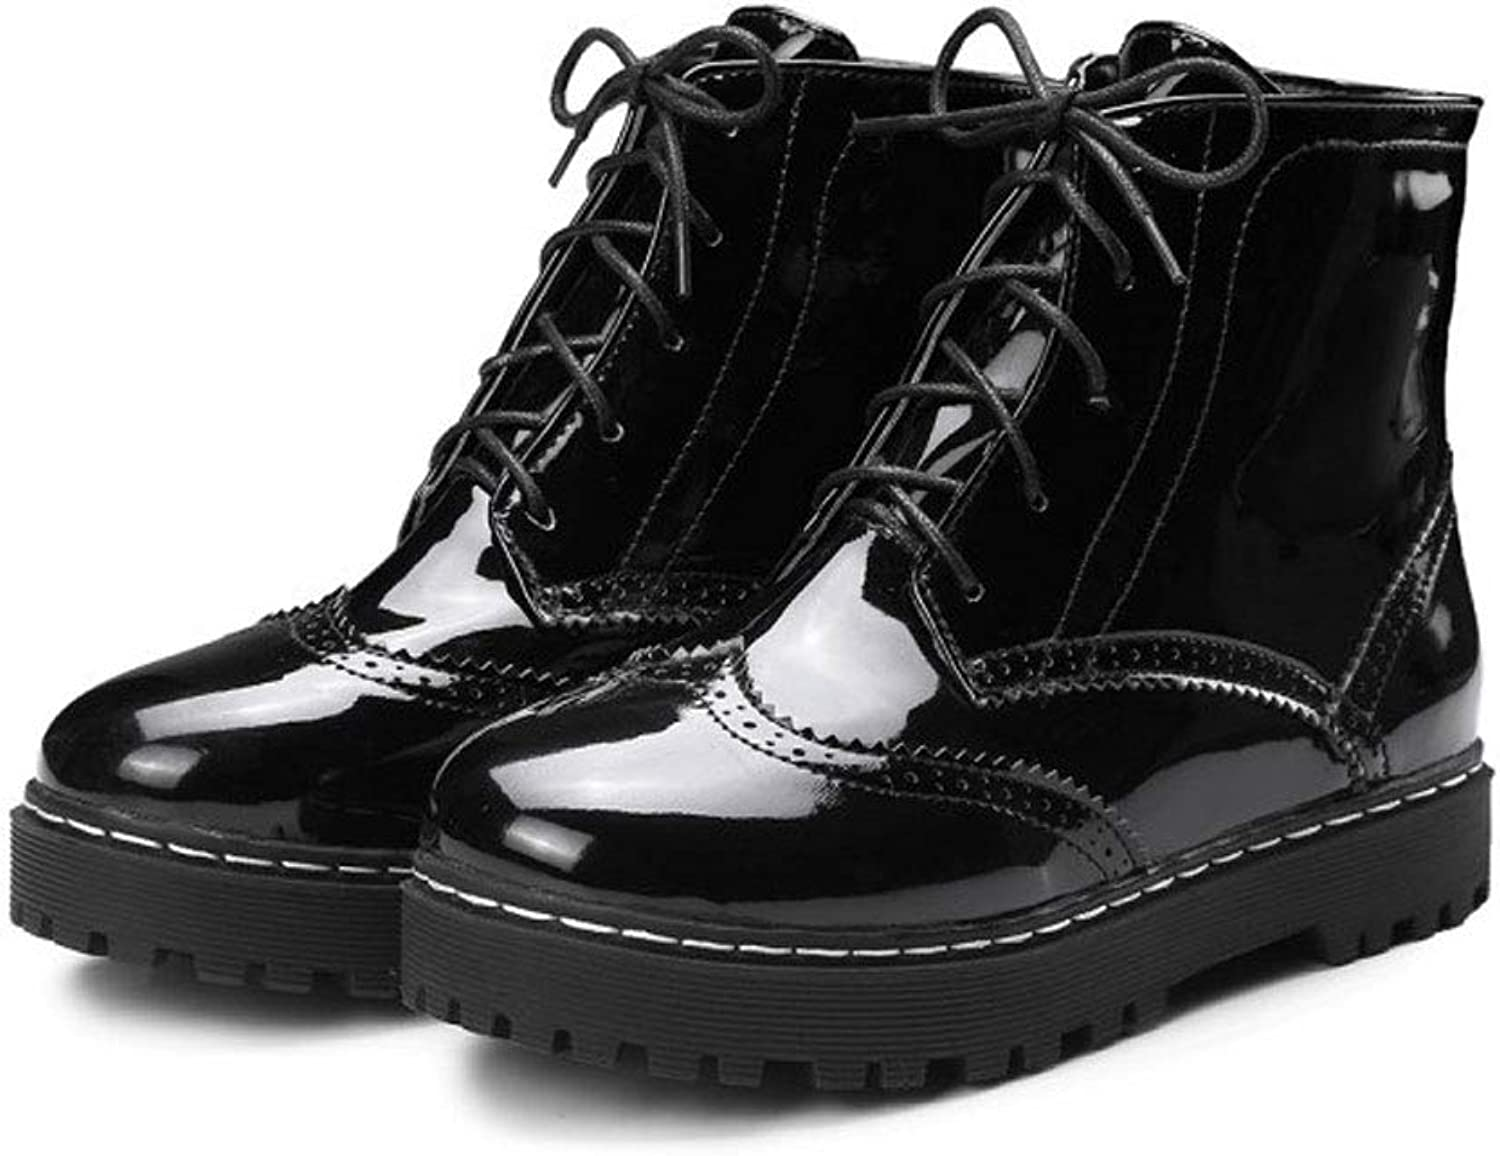 Lace Ankle Boots, Flat Round Martin Boots Waterproof Platform Short Boots Non-Slip Low Boots Women's Hollow Casual shoes